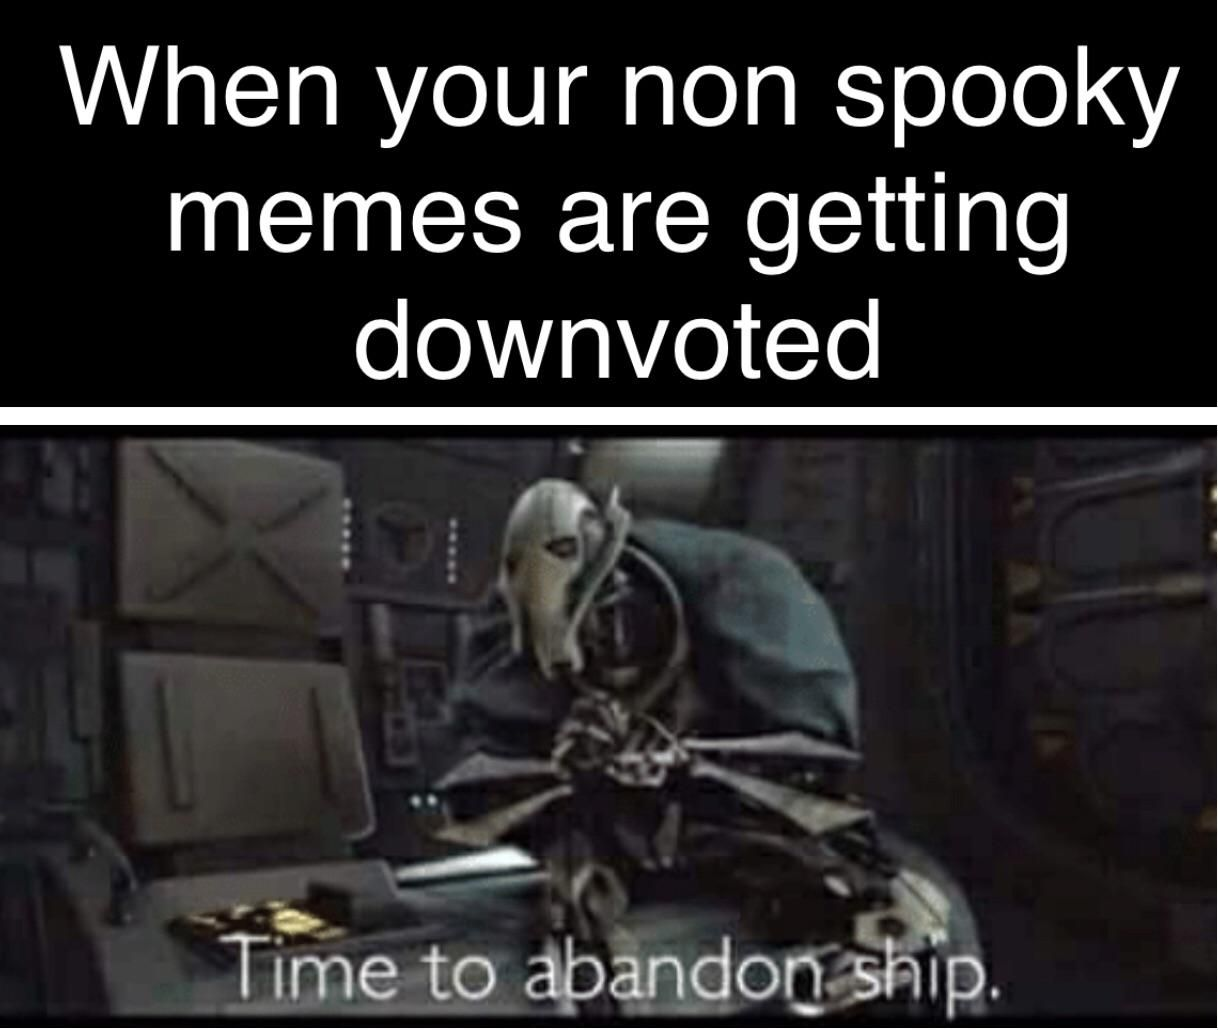 Its Spooktober So We Need General Grievous Memes Spooktober Memes Spooky Memes Star Wars Memes